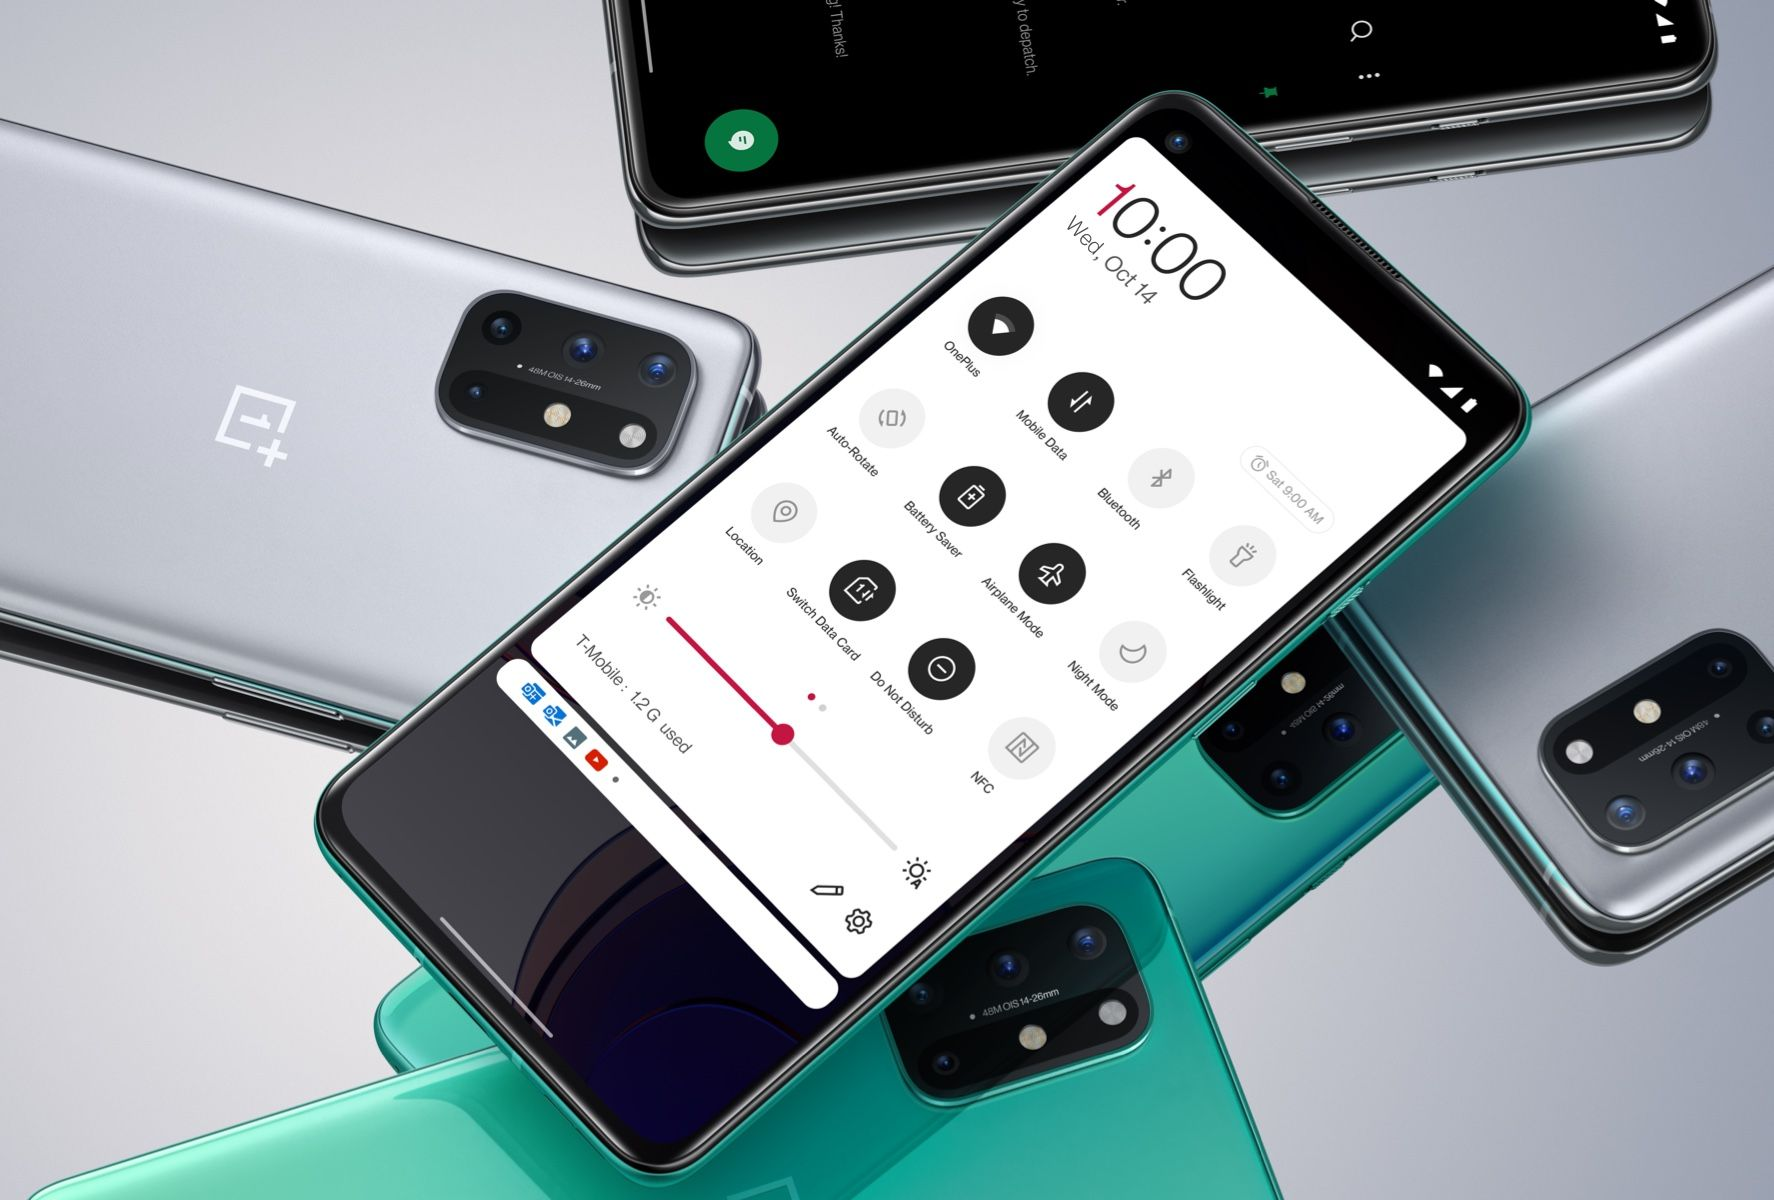 oneplus-8t-display